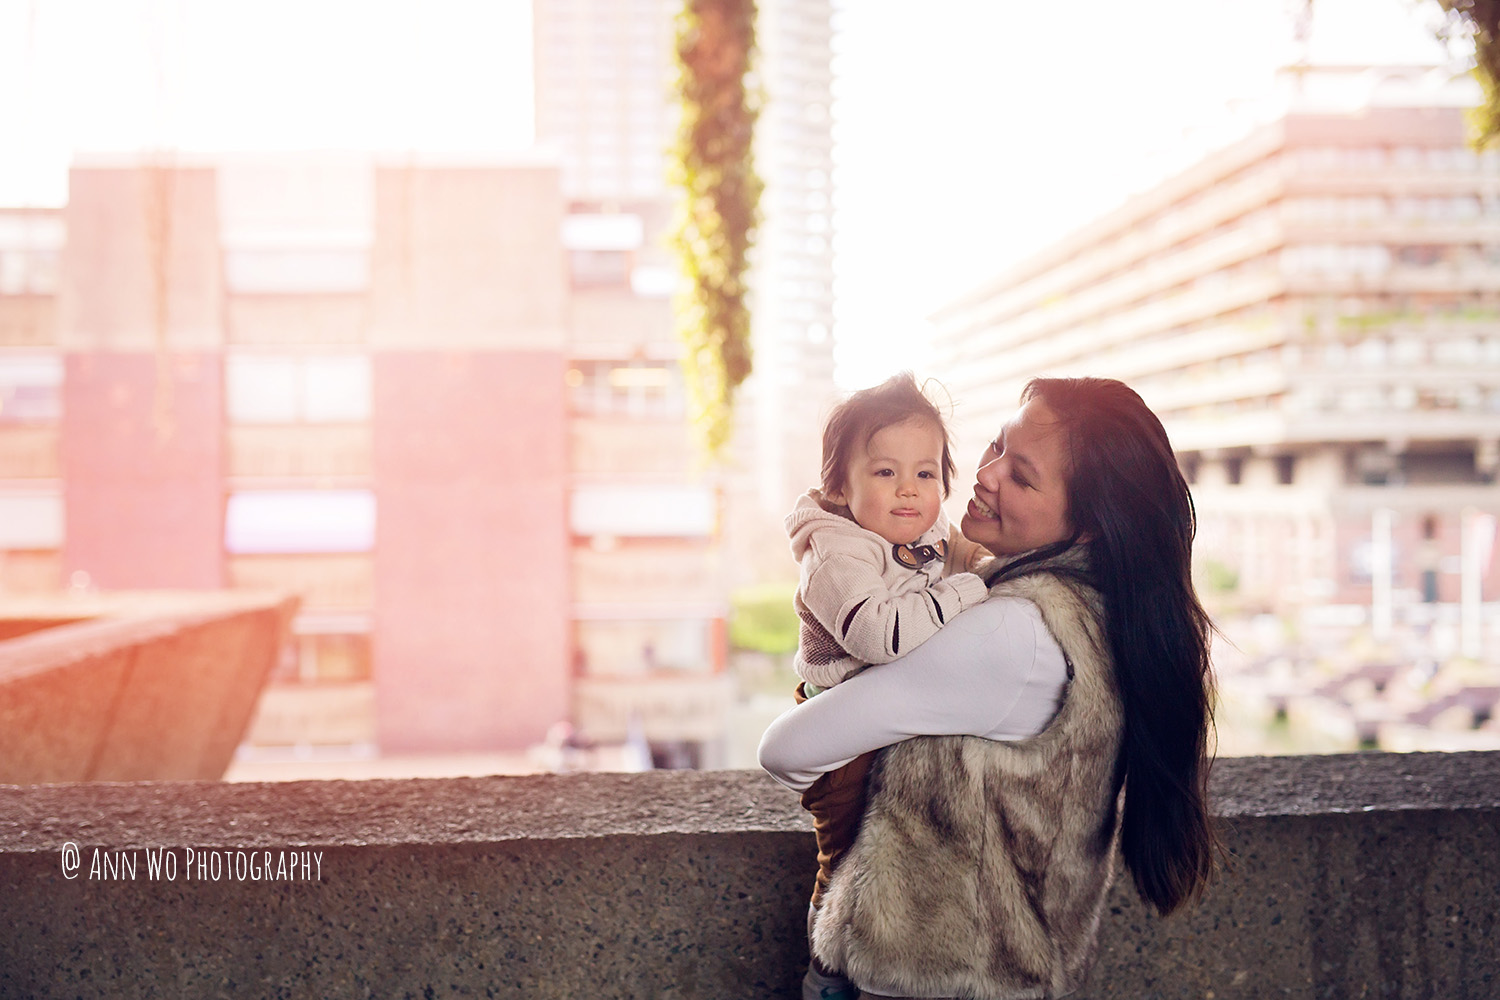 lifestyle-photography-london-family-baby-photoshoot-ann-wo-55.jpg